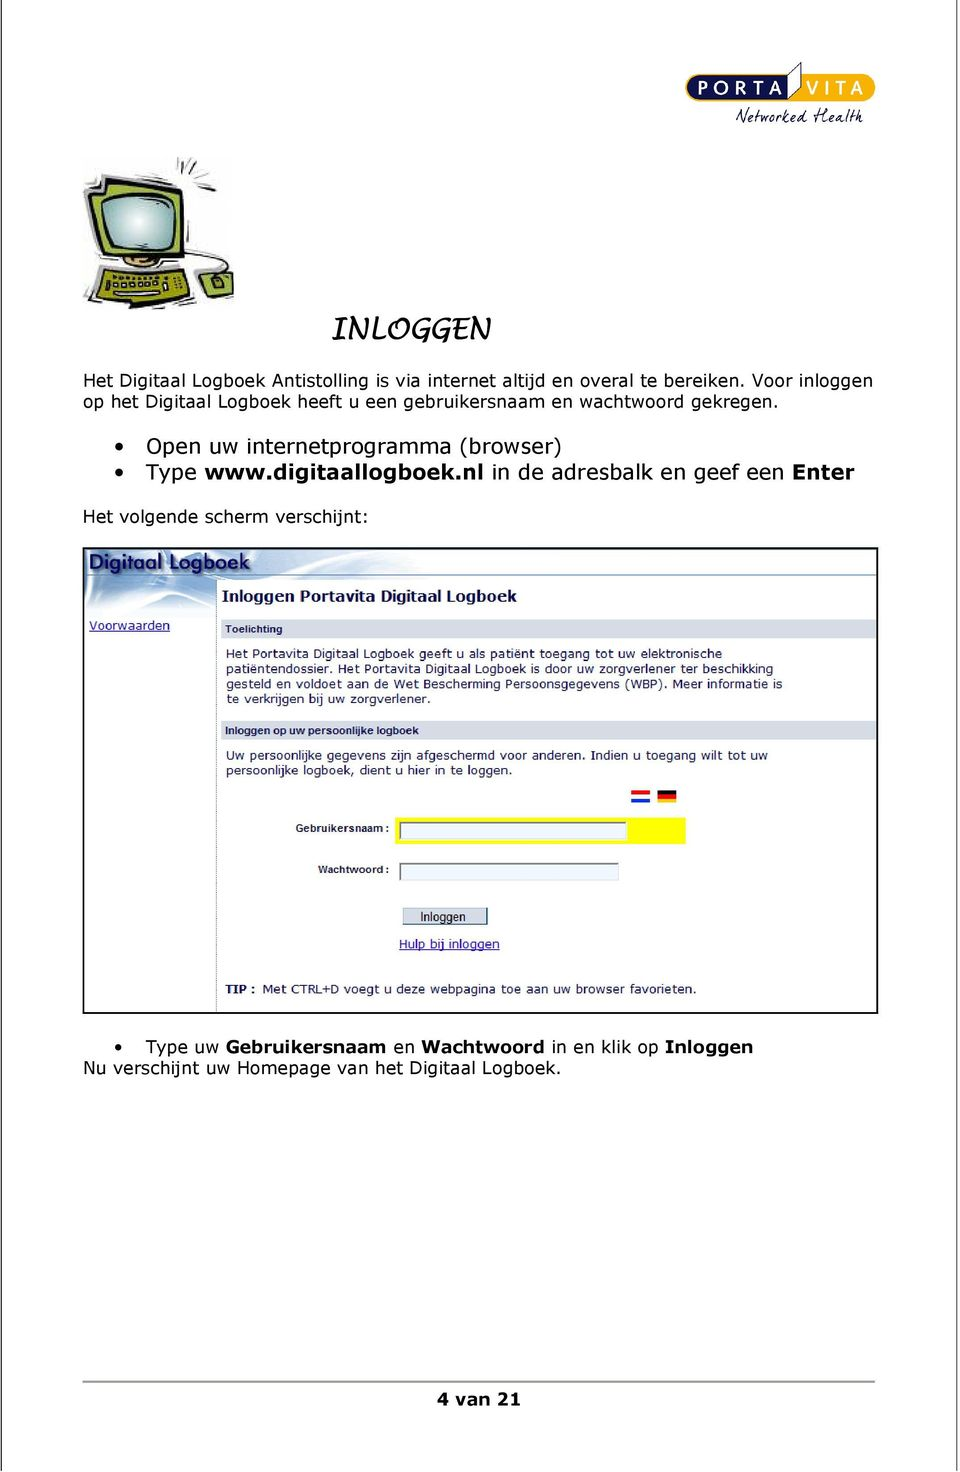 Open uw internetprogramma (browser) Type www.digitaallogboek.